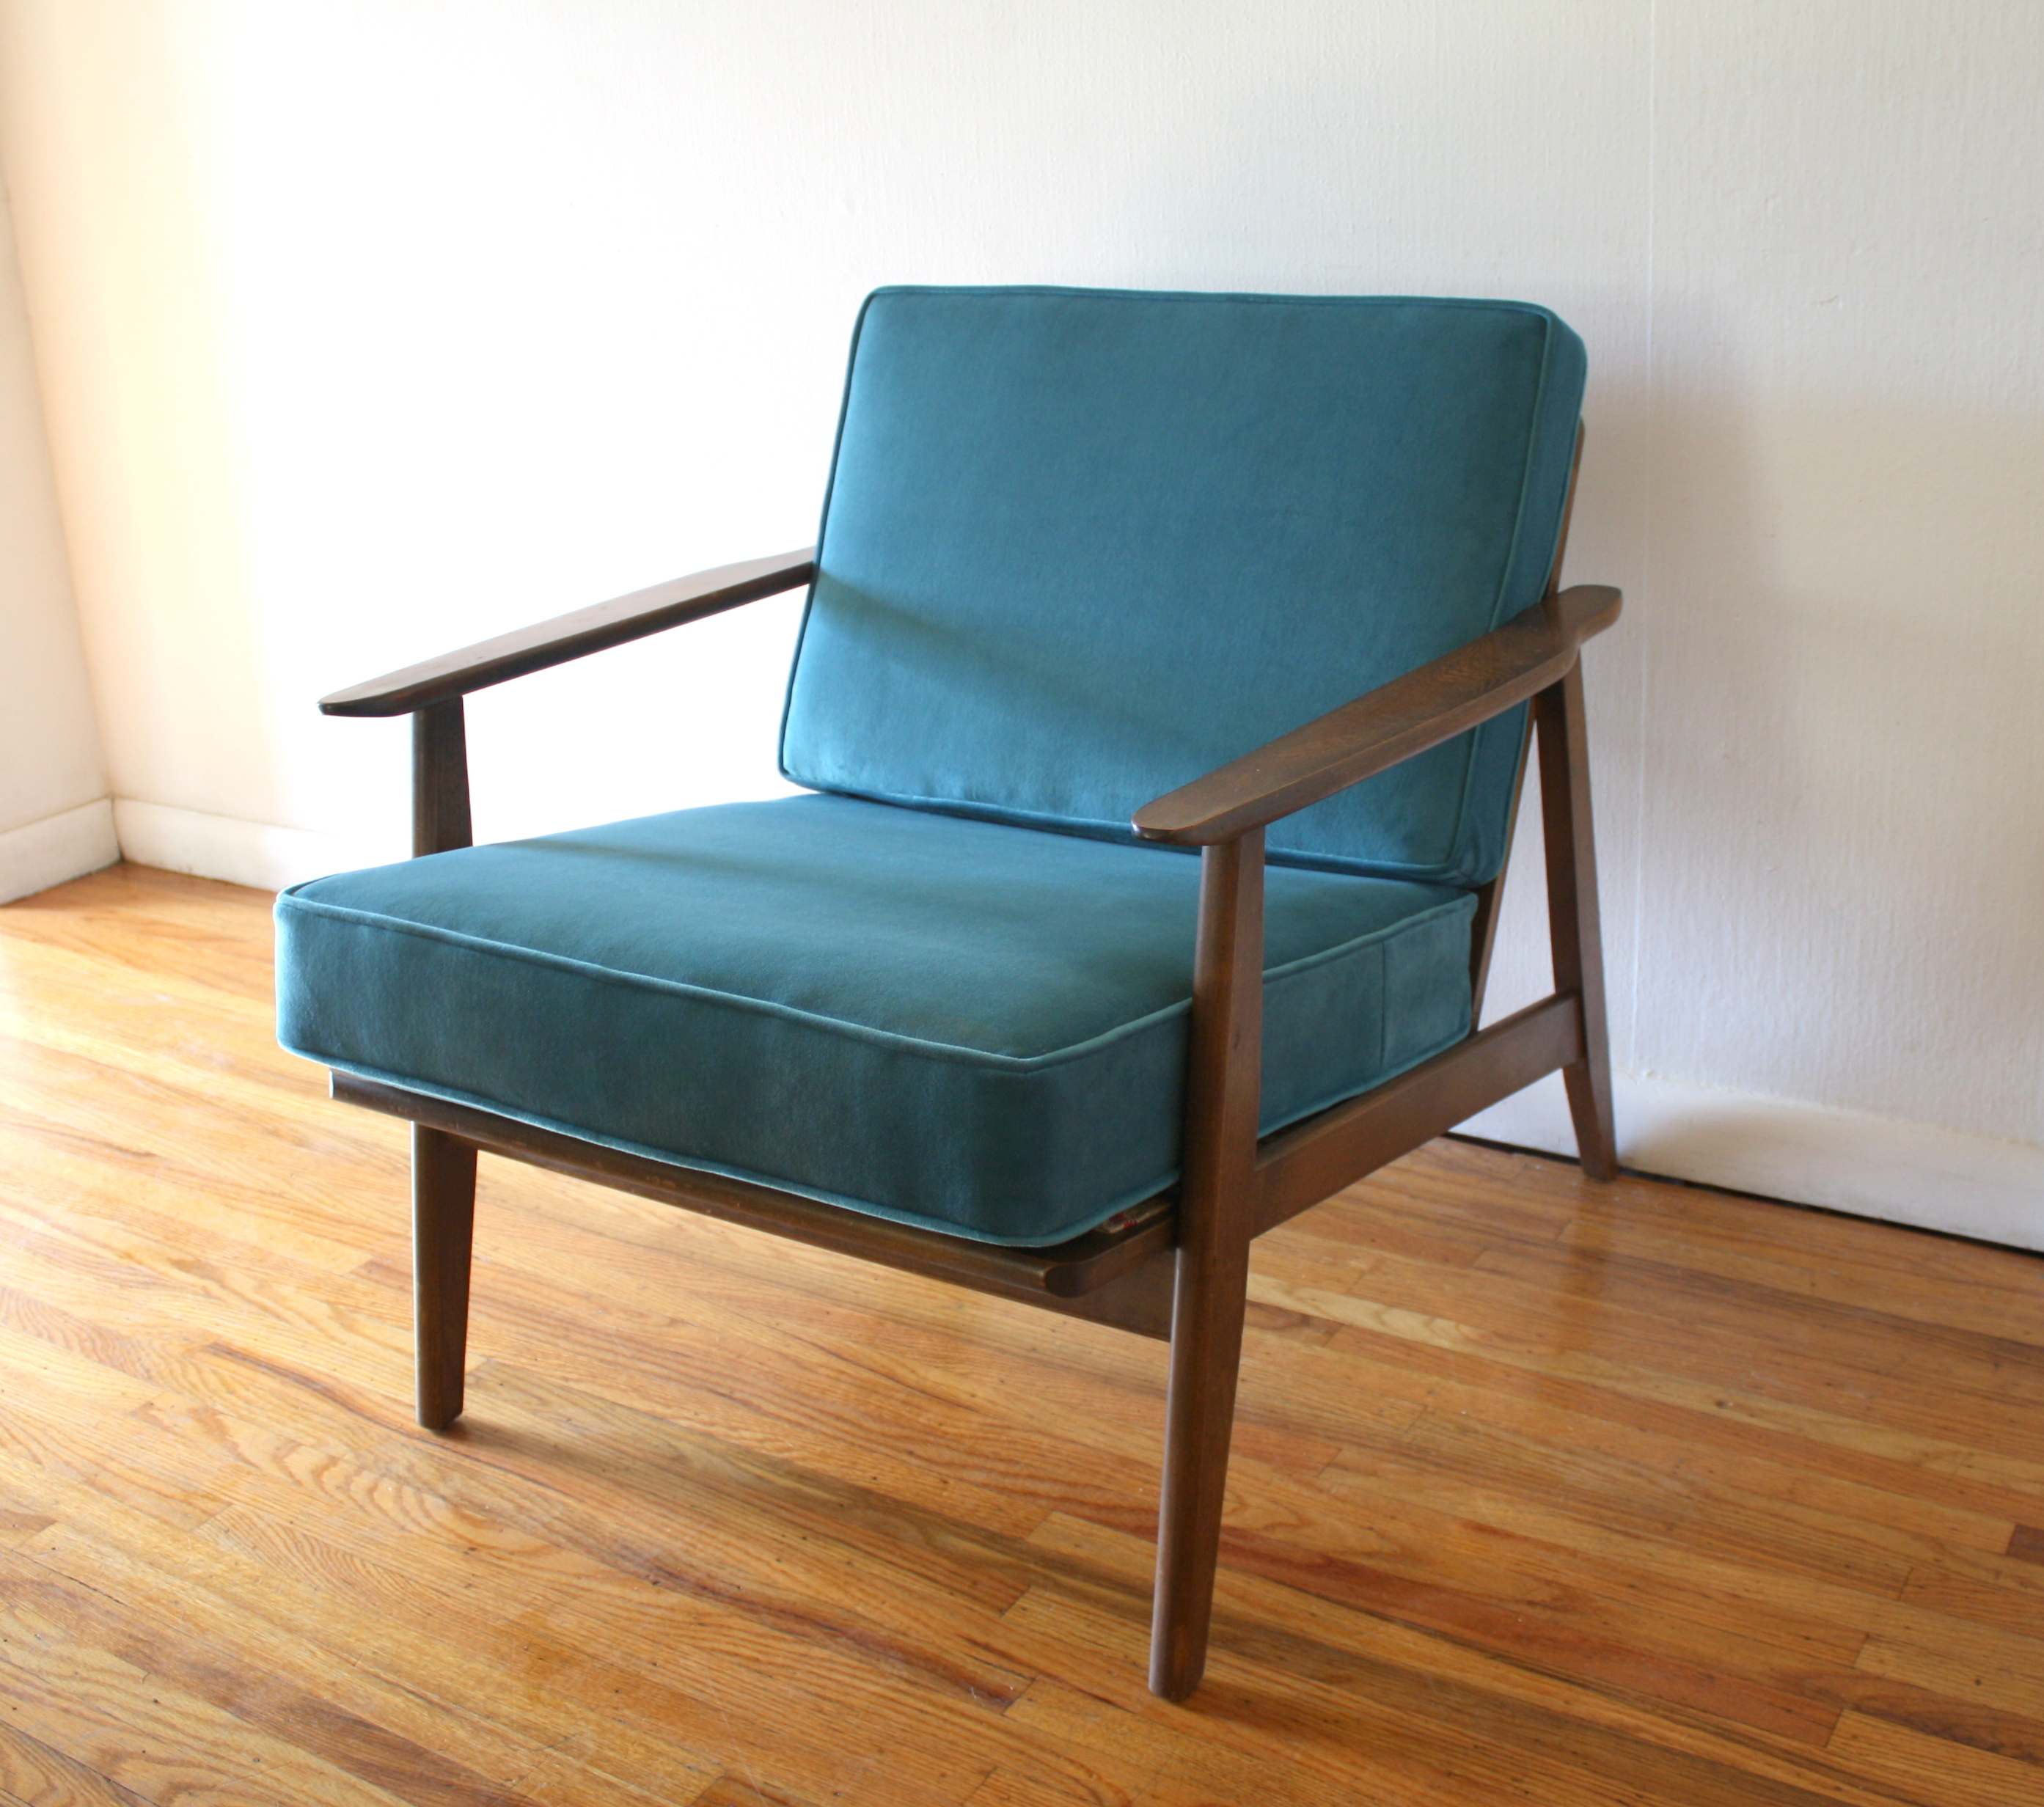 mcm-arm-chair-with-teal-velvet-cushions-1